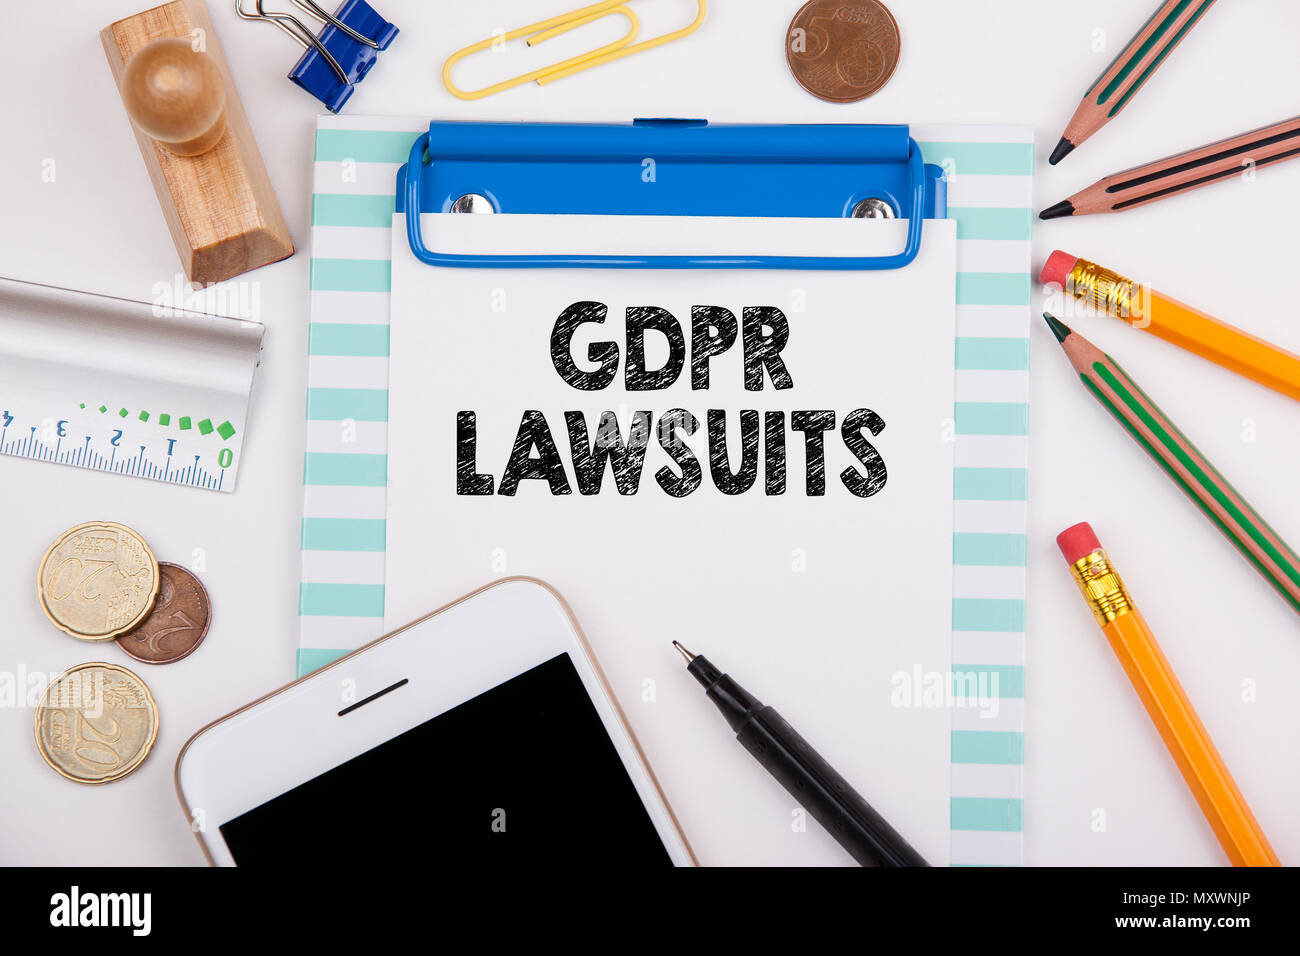 GDPR and lawsuits, business background - Stock Image